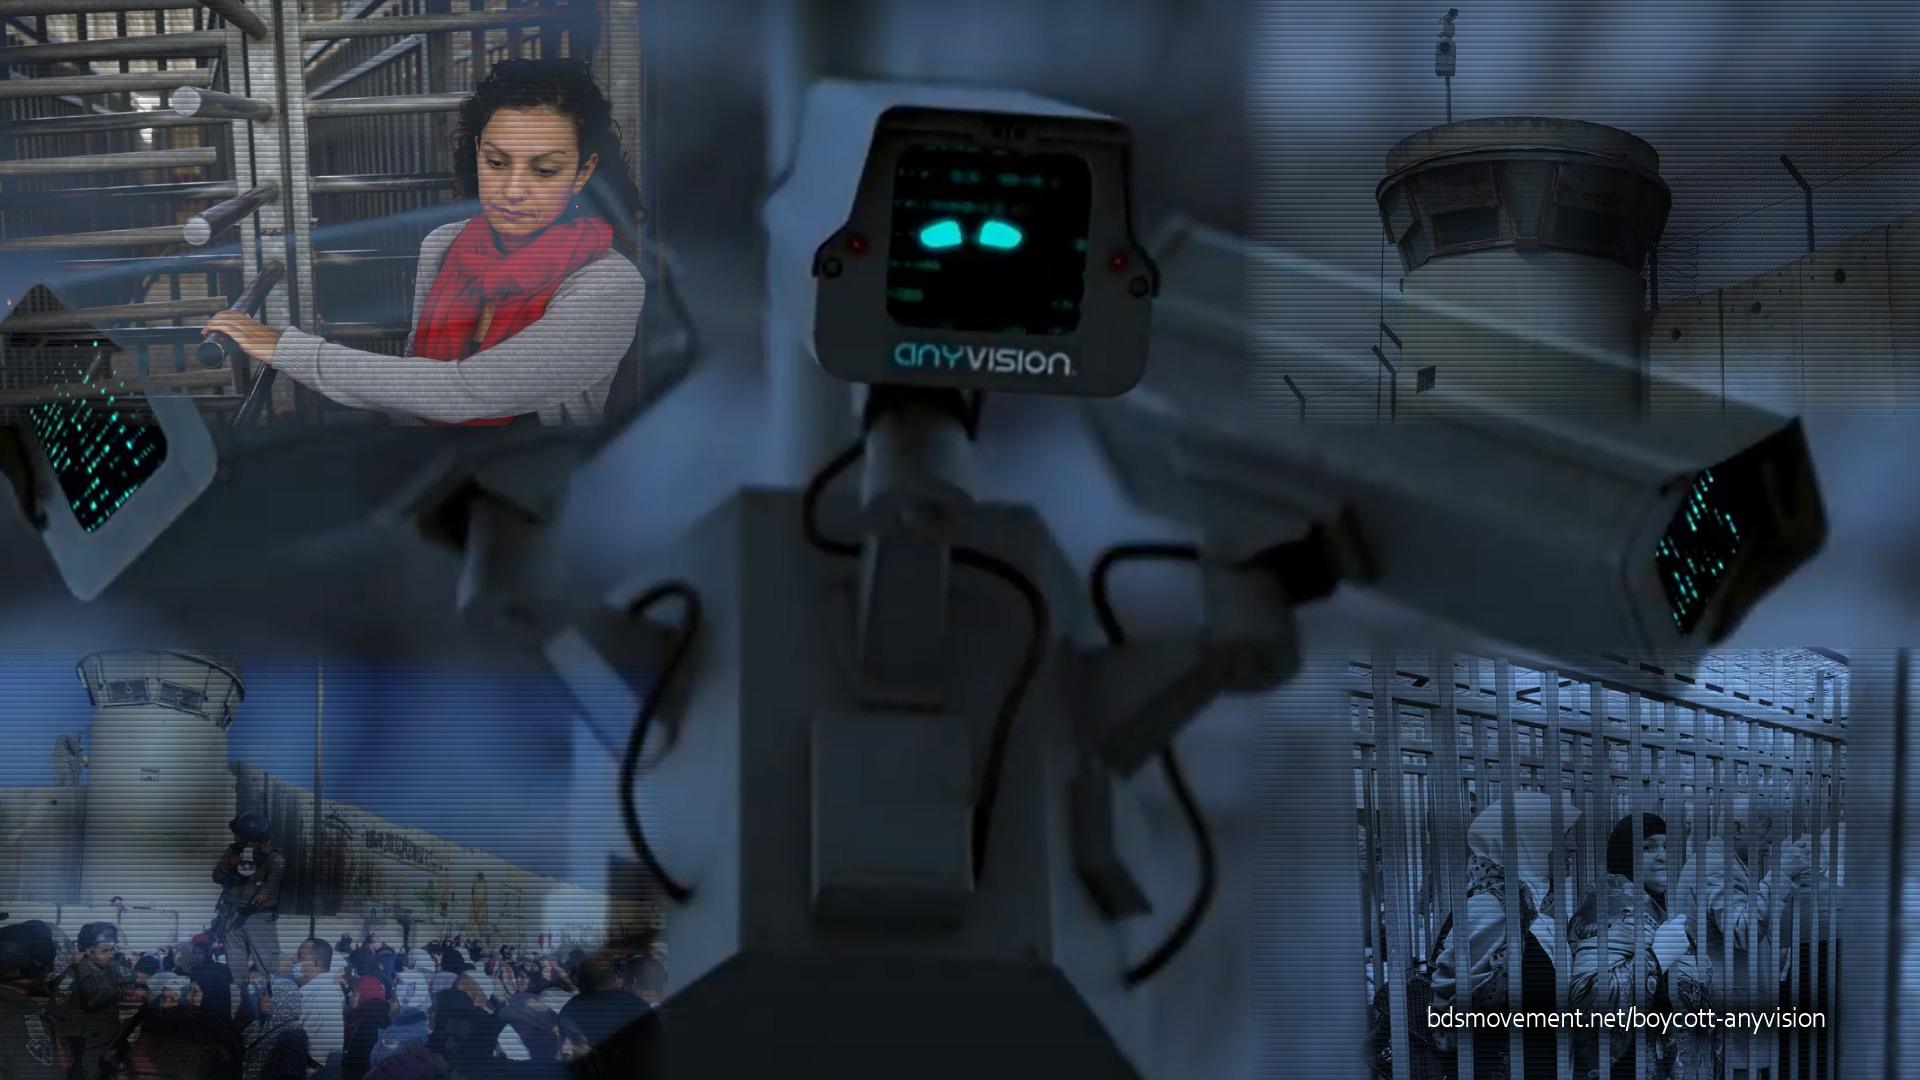 Palestinians Renew Call to Boycott Israeli Facial Recognition Company AnyVision